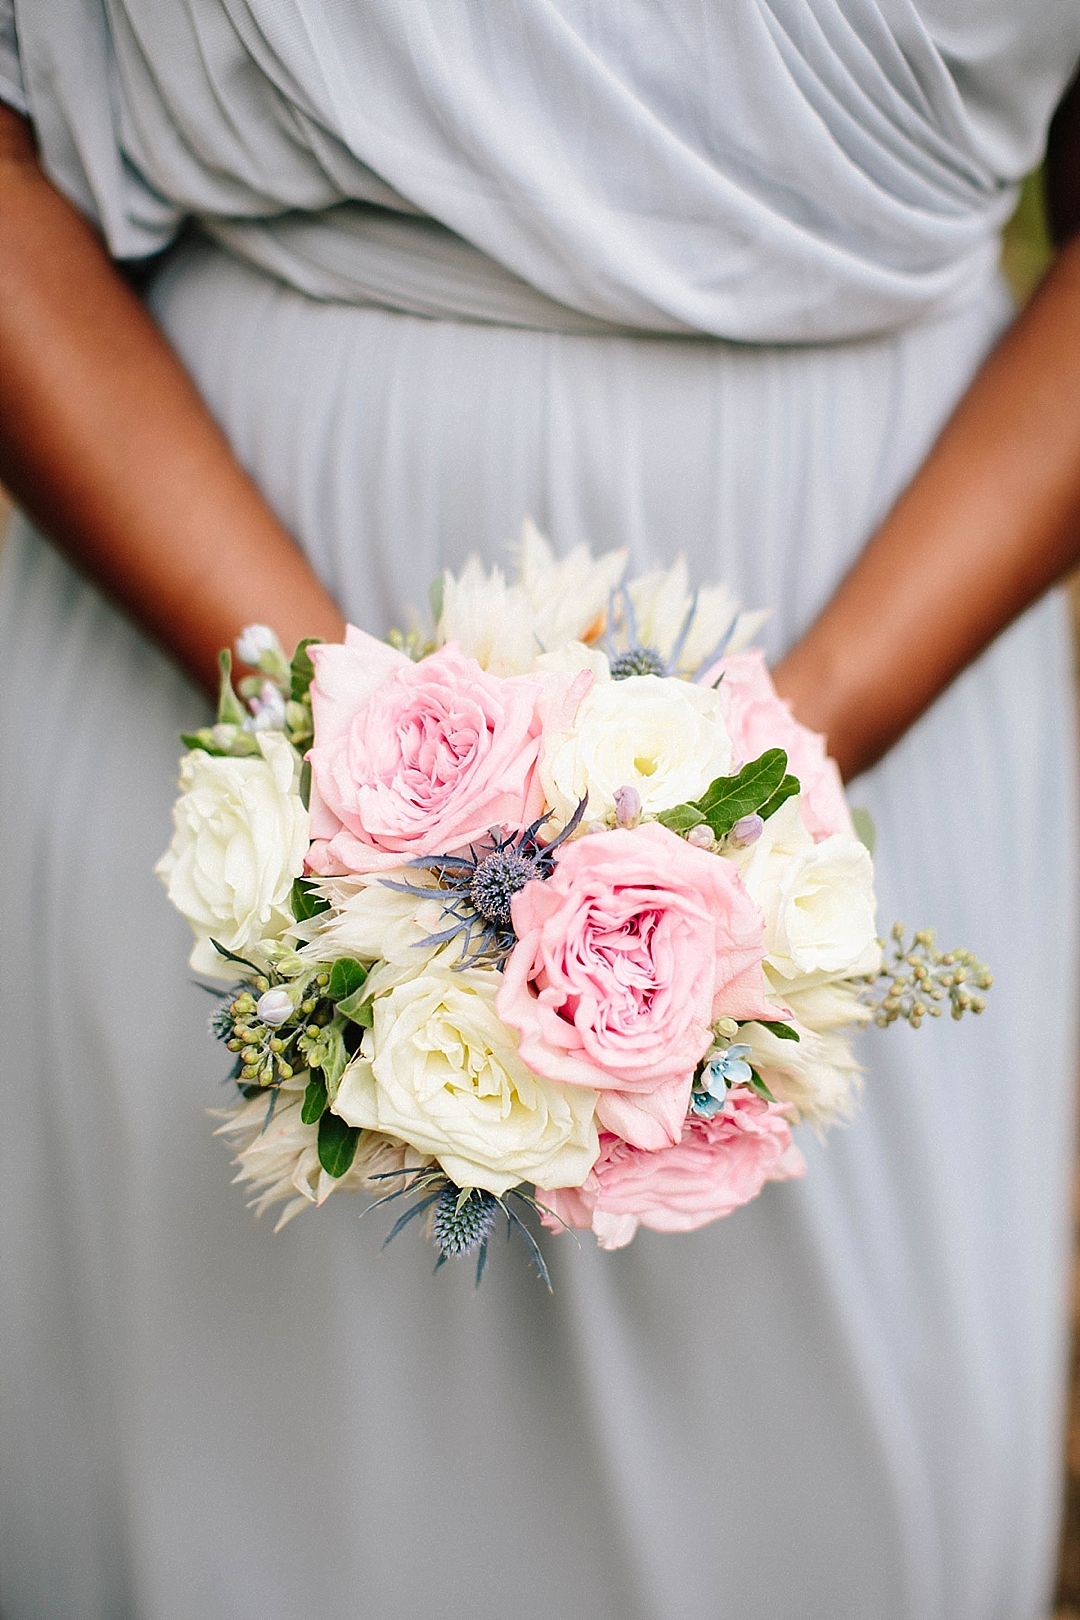 davids bridal for aisle society - bouquets